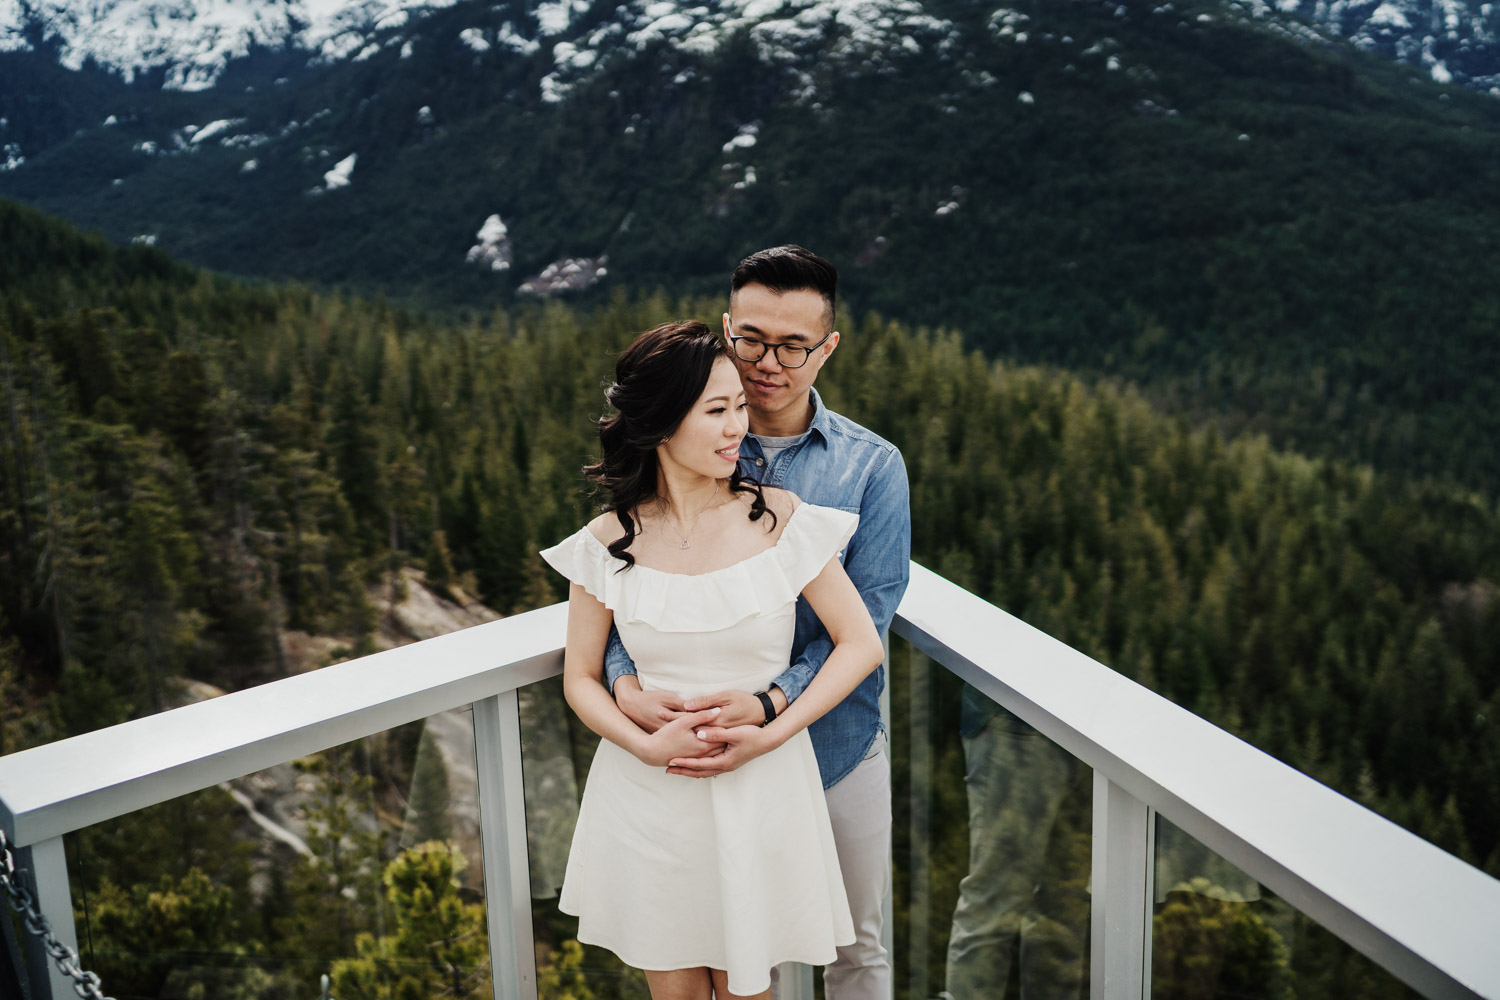 sea to sky gondola engagement photography trails squamish bc